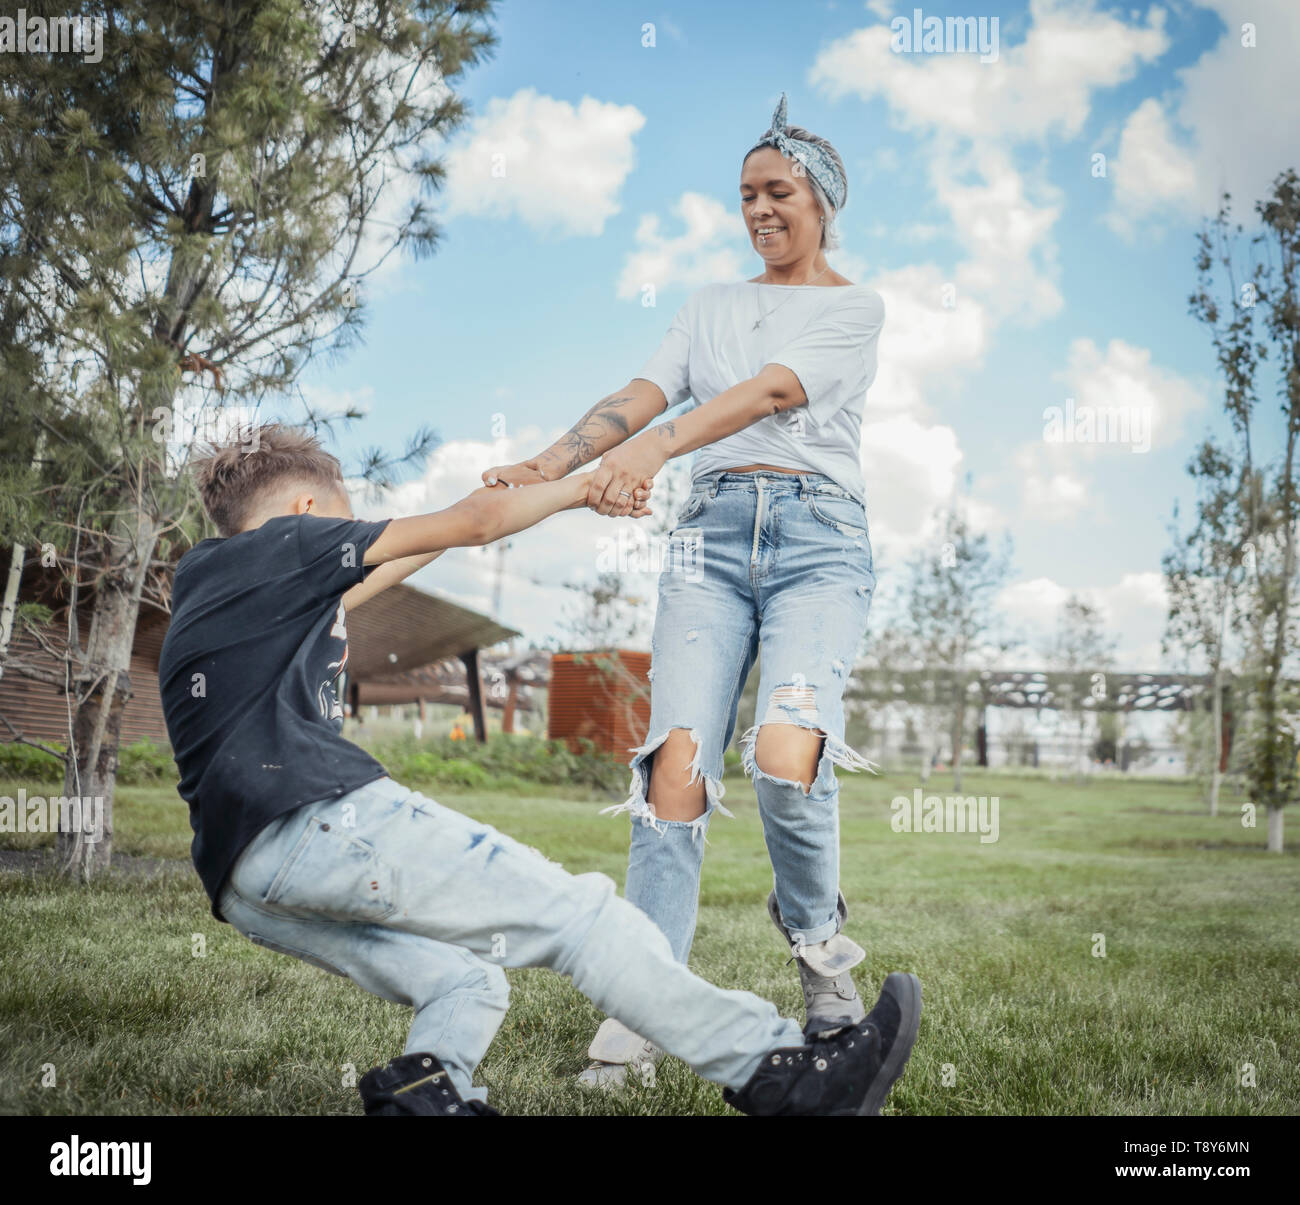 Pretty mum turning around, whirling with her son at park. Happy family concept. - Stock Image